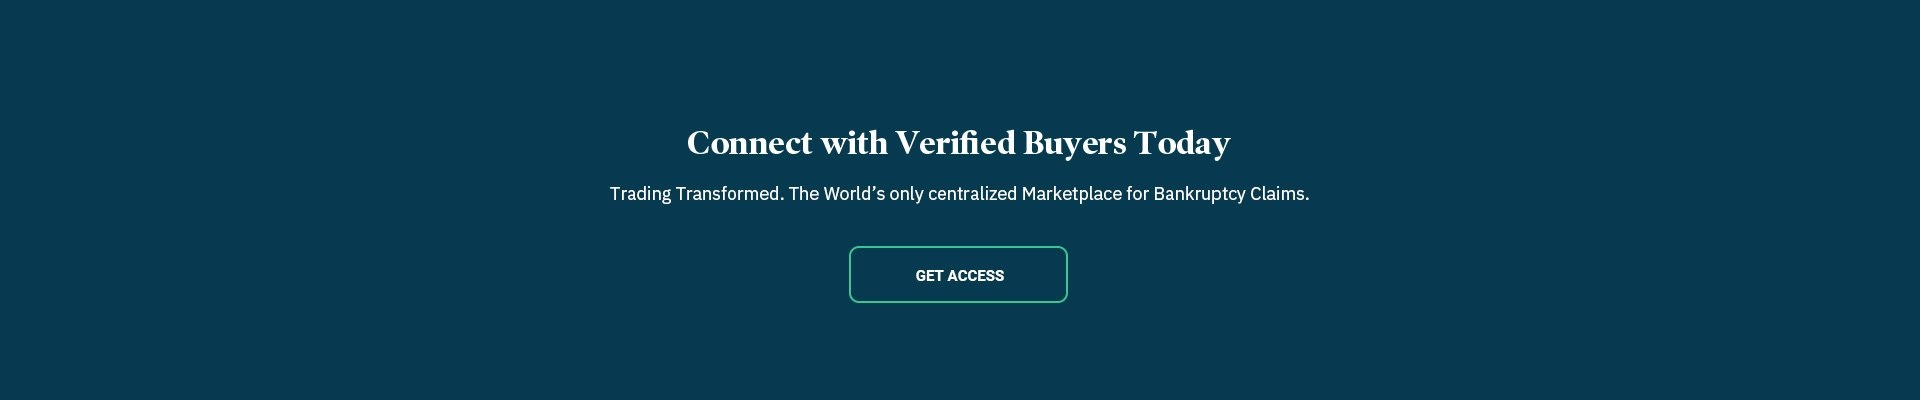 XCLAIM-Marketplace-connect-with-Verified-Buyers-to-sell-your-bankruptcy-claim